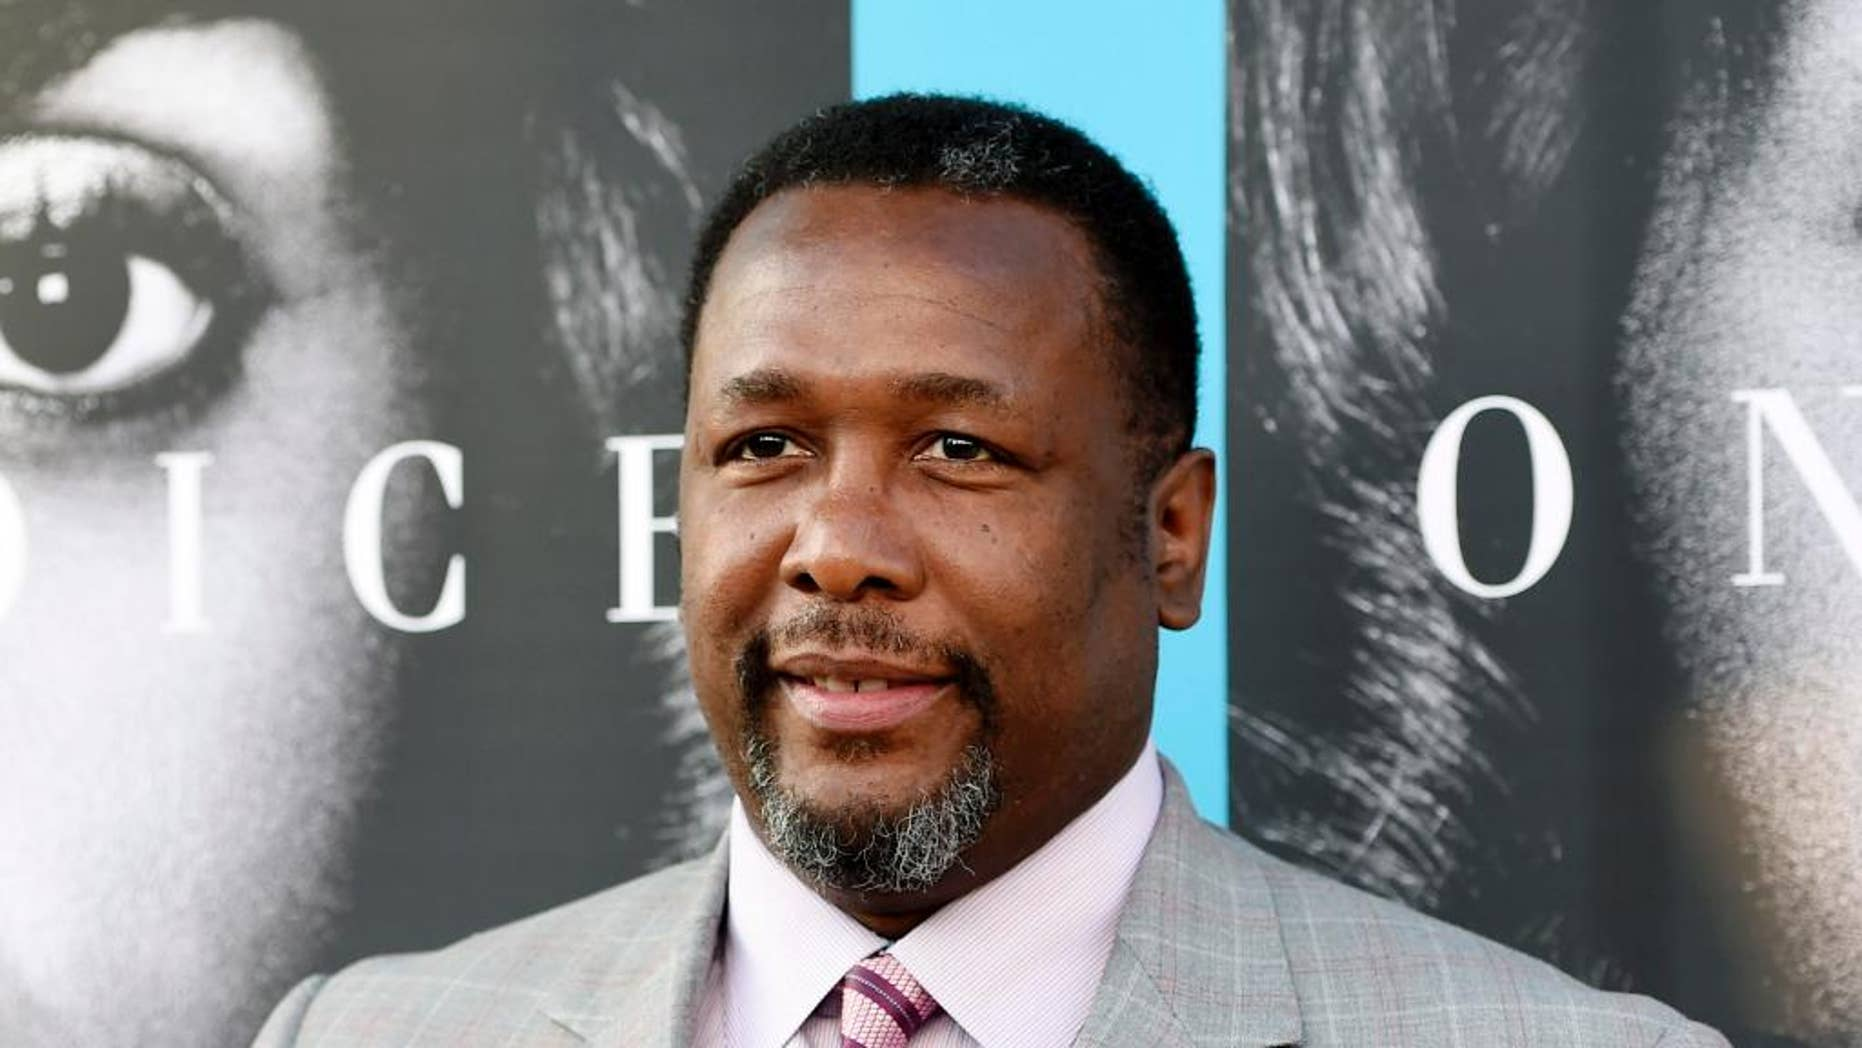 """In this March 31, 2016 file photo, Wendell Pierce, a cast member in """"Confirmation,"""" poses at the premiere of the HBO film in Los Angeles."""